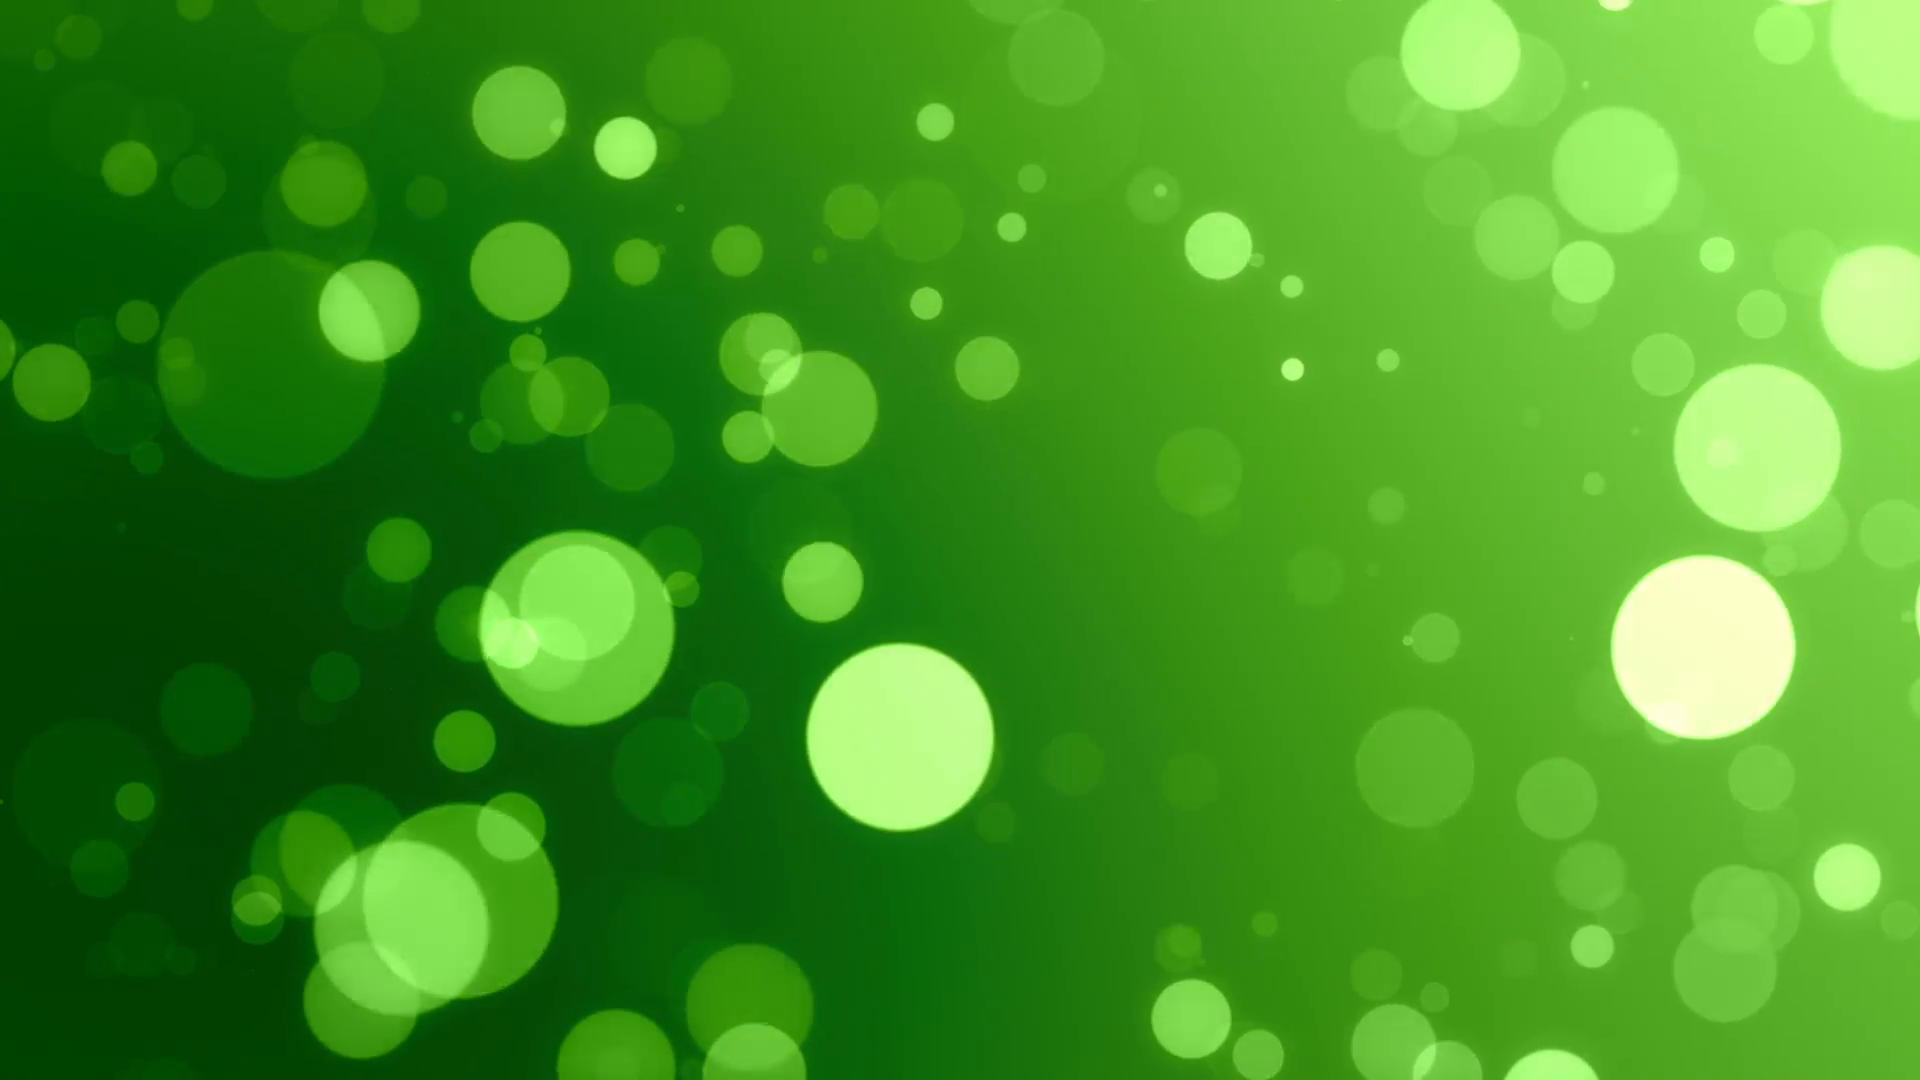 Green Bokeh Background Motion Background - Videoblocks